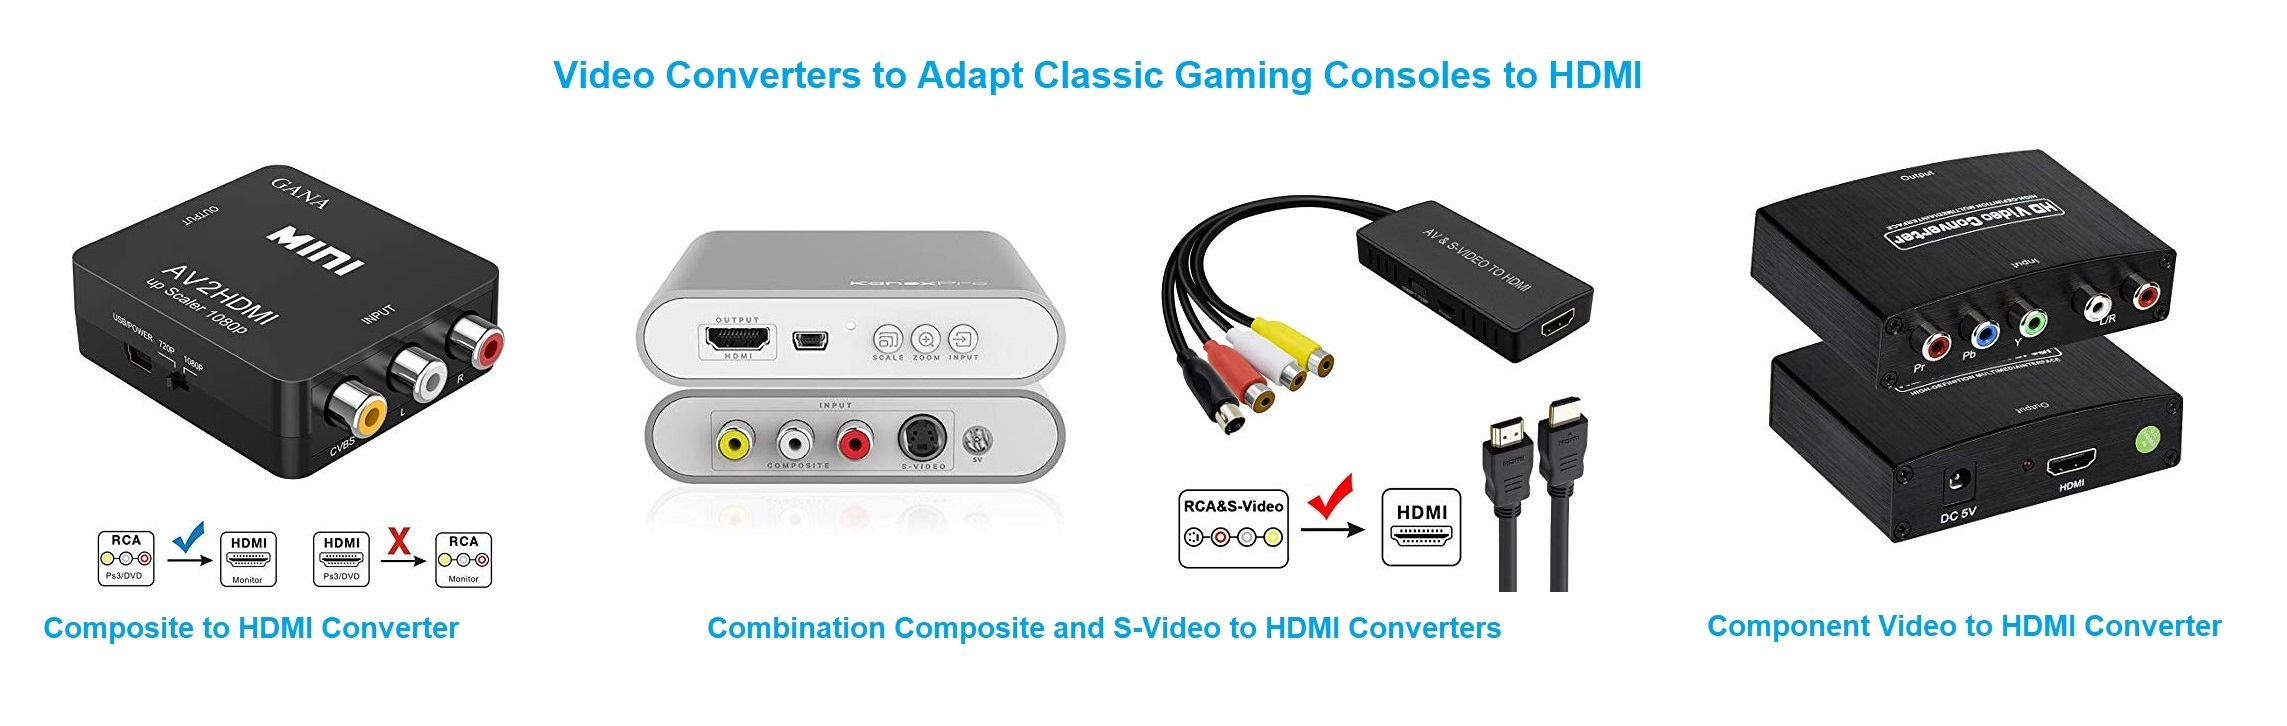 Video Converters for Classic Game Consoles